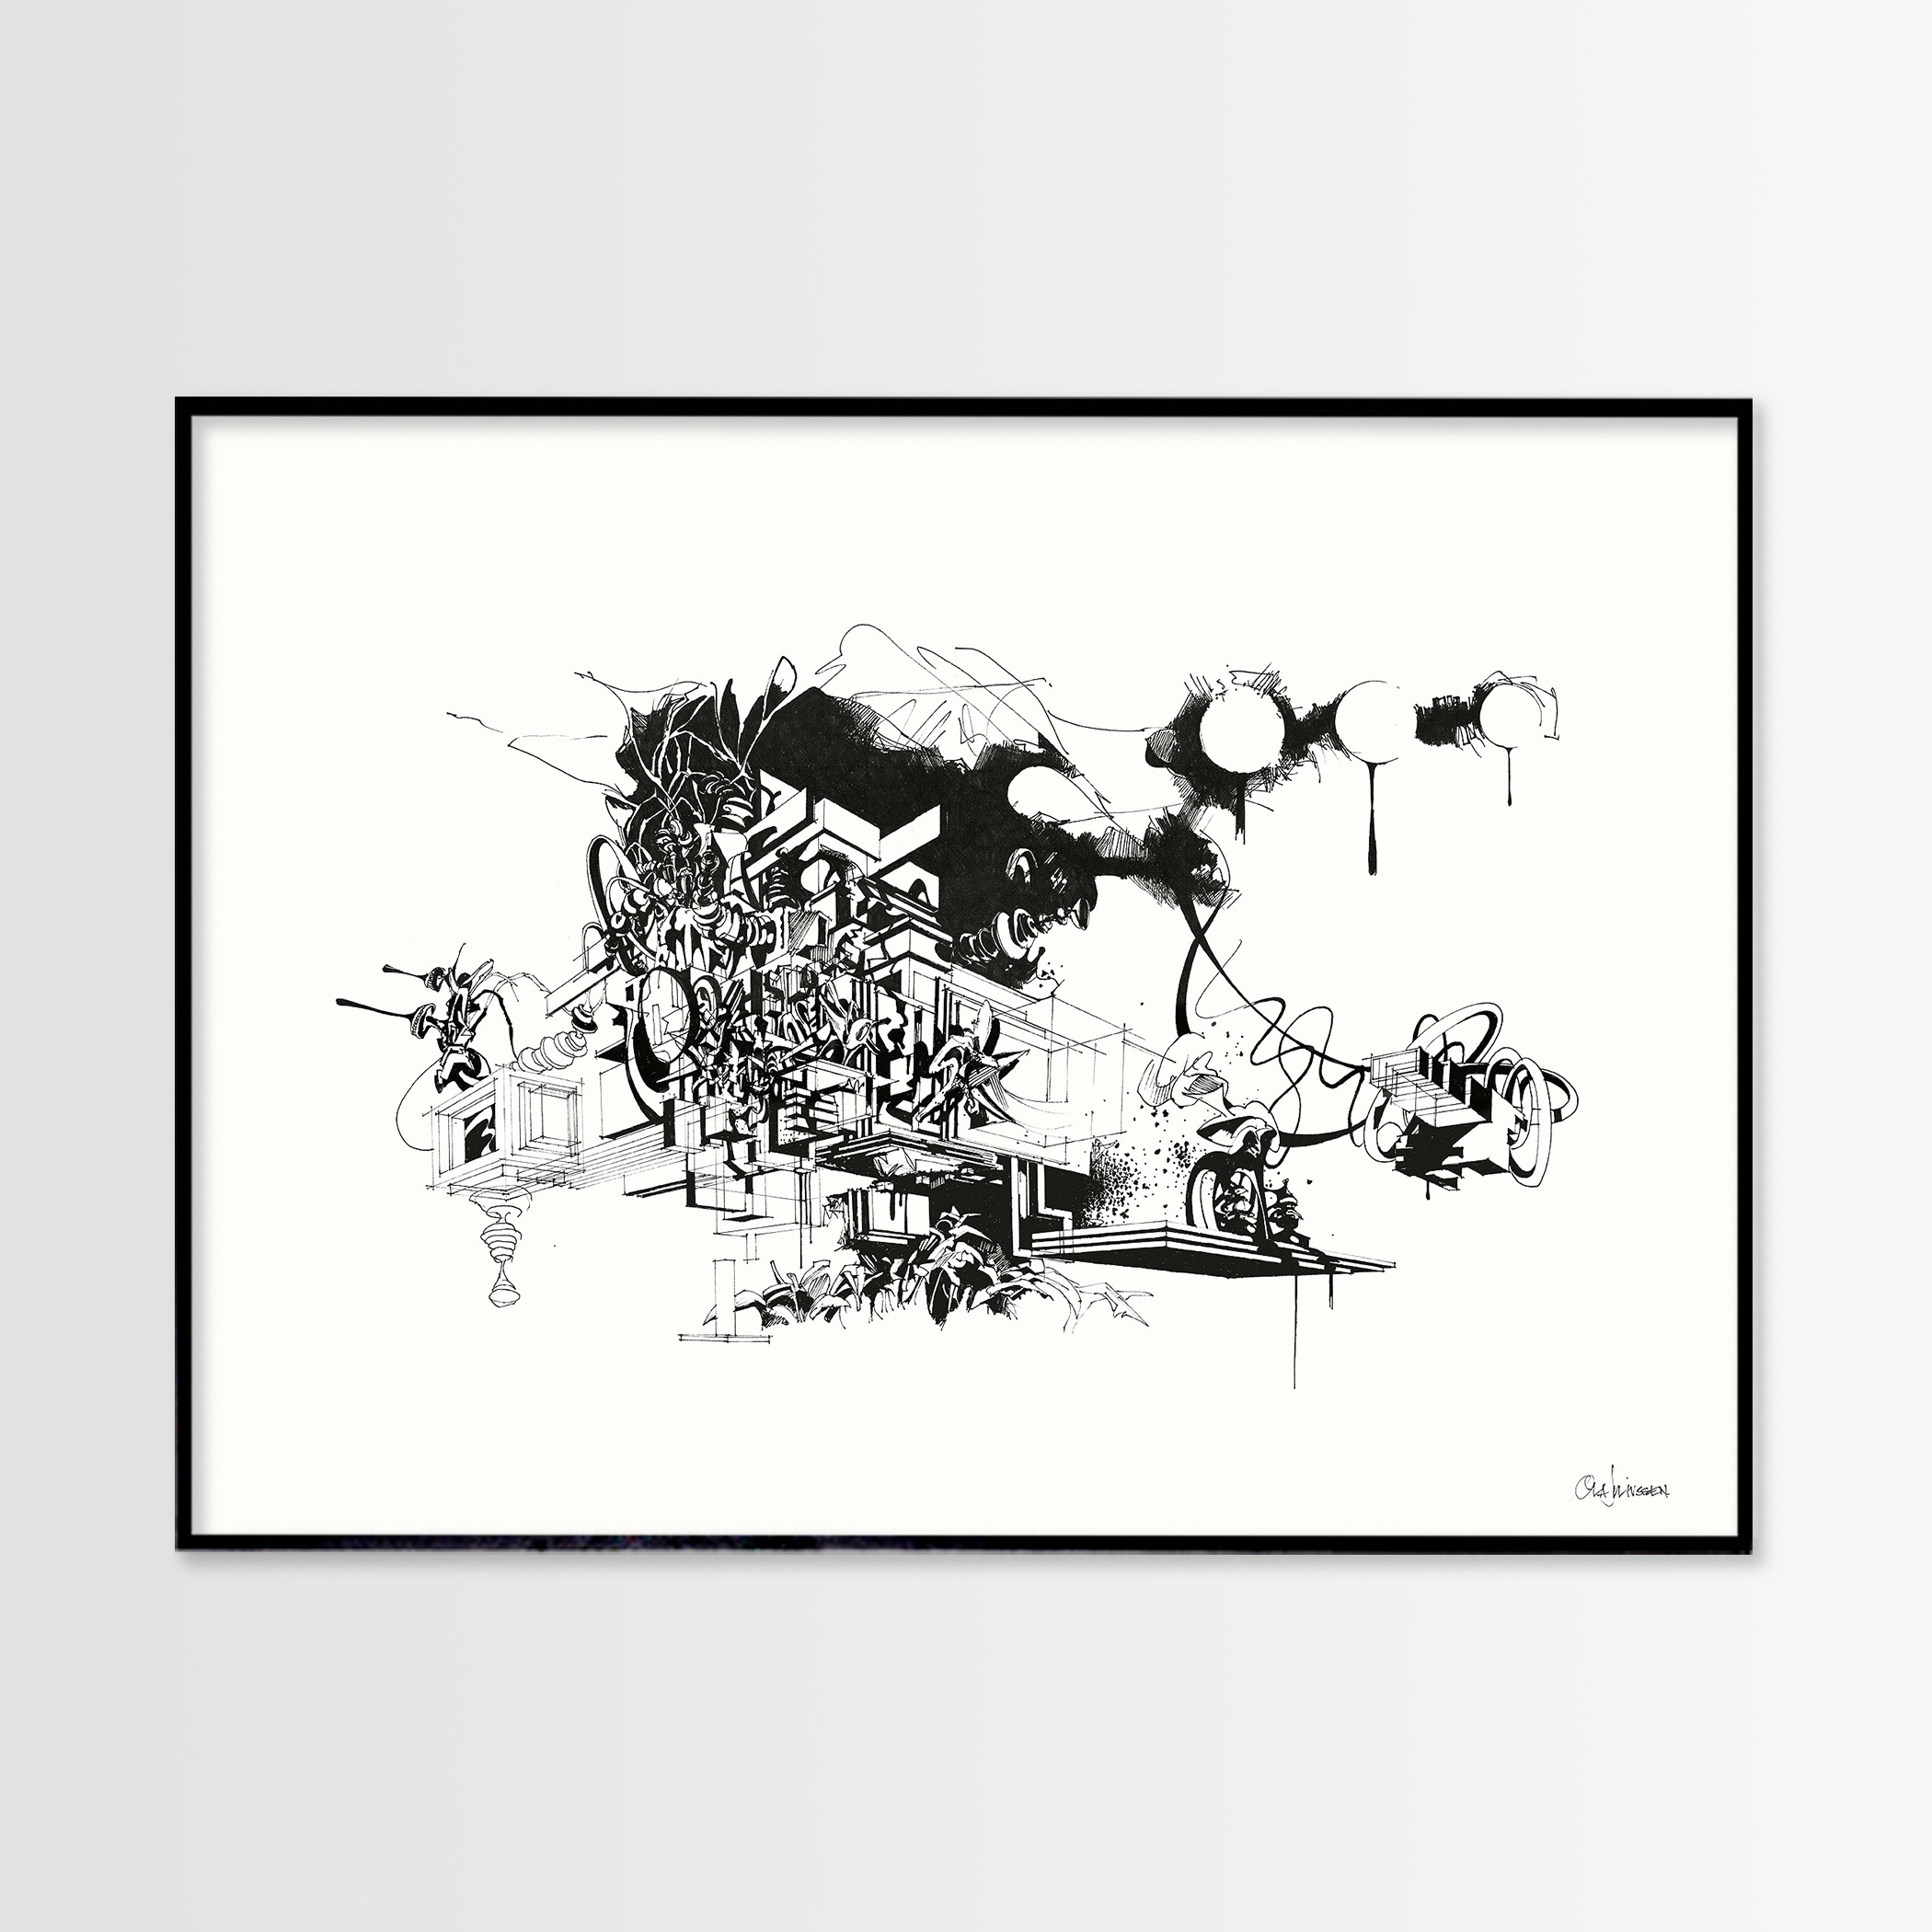 posters, giclee, aesthetic, geometric, graphical, monochrome, architecture, botany, nature, patterns, black, white, ink, paper, abstract-forms, architectural, black-and-white, buildings, contemporary-art, danish, decorative, design, interior, interior-design, modern, modern-art, nordic, plants, scandinavien, scenery, Buy original high quality art. Paintings, drawings, limited edition prints & posters by talented artists.